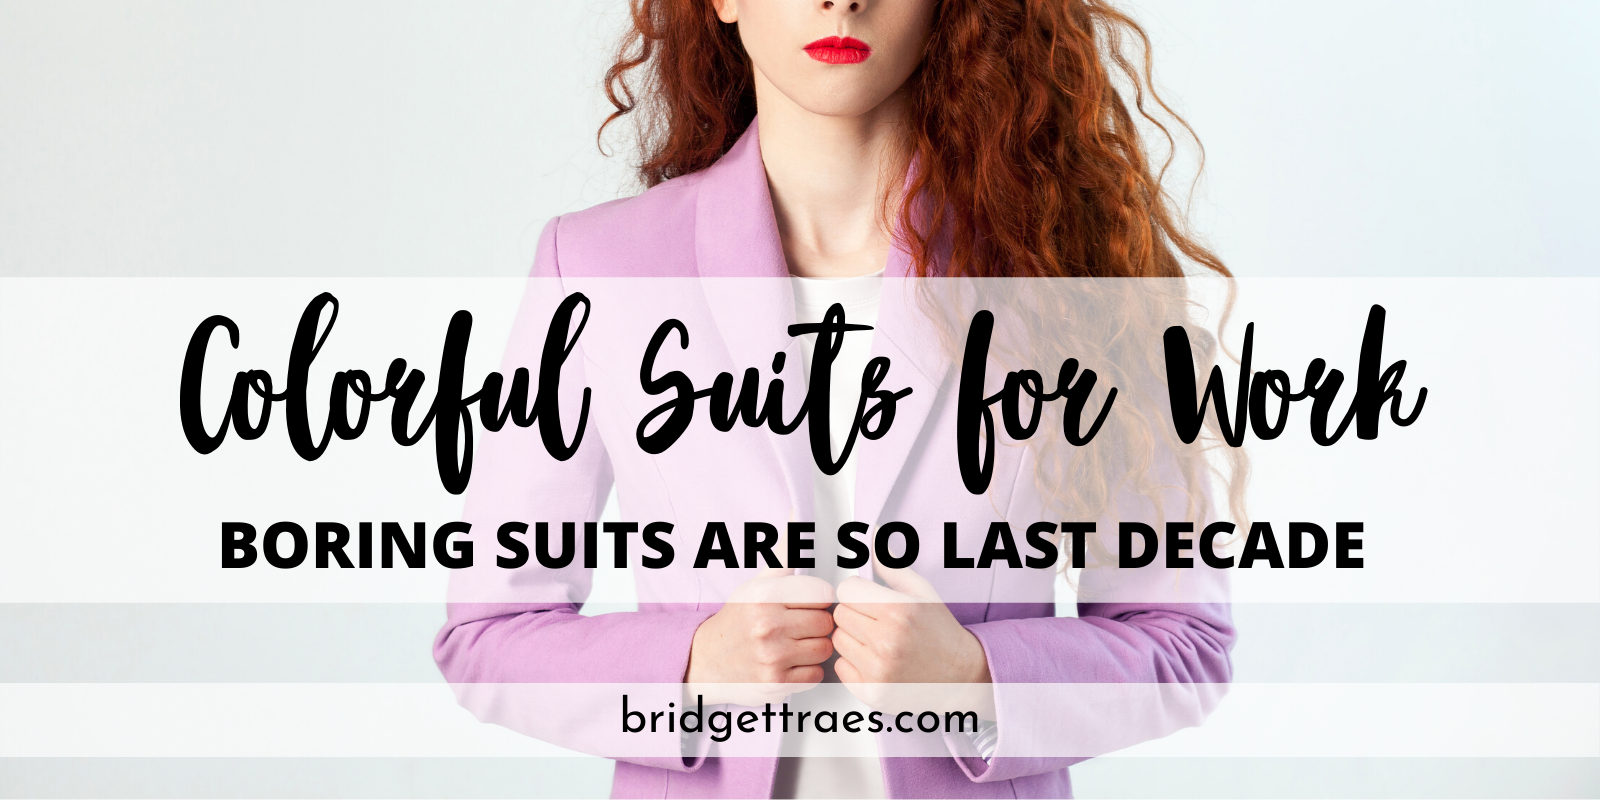 Colorful Suits for Work: Boring Suits are so Last Decade